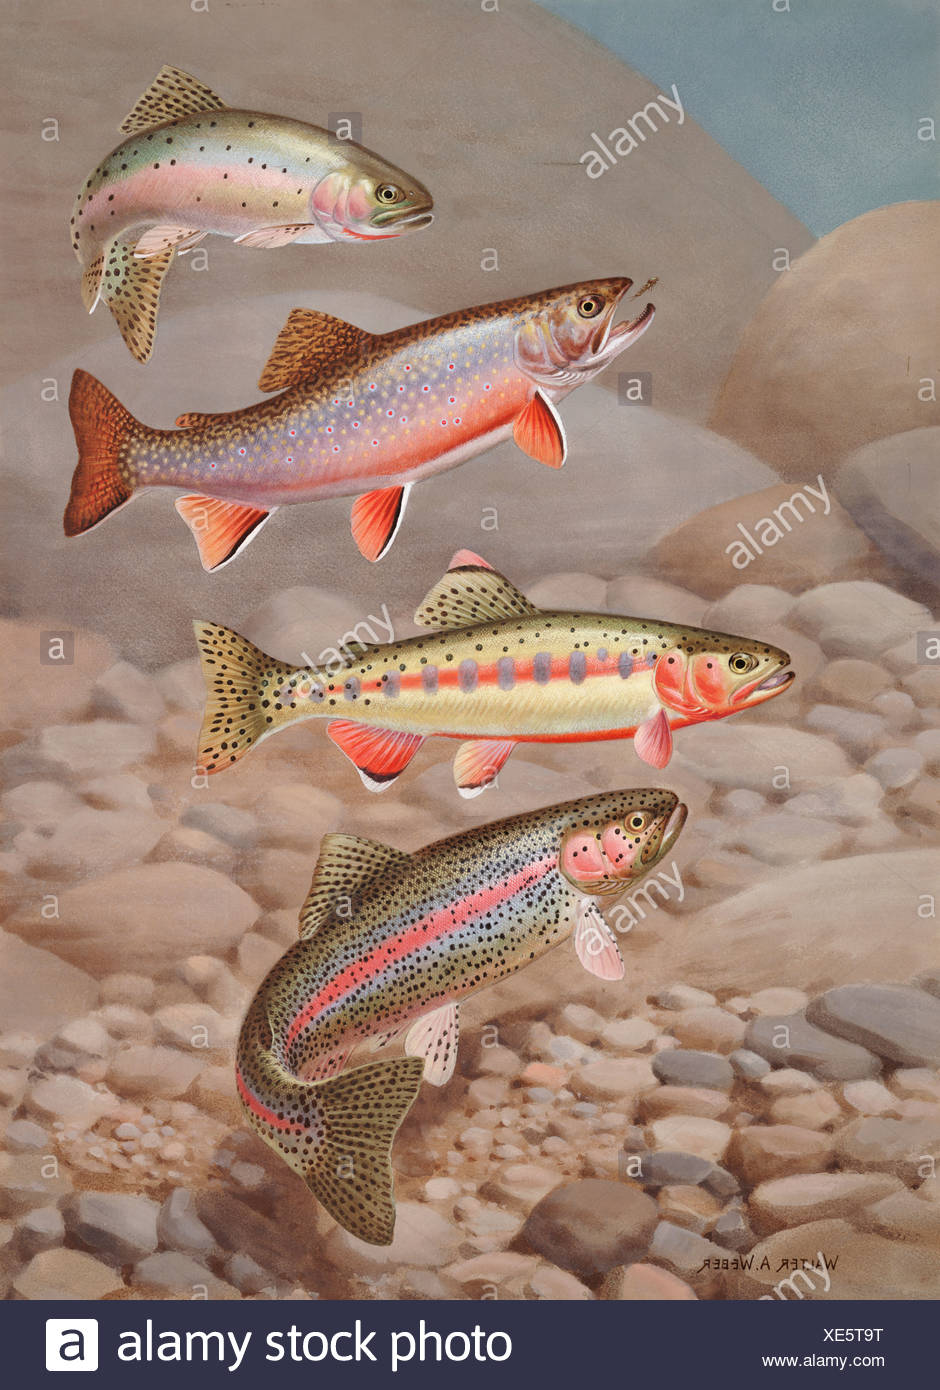 Four species of trout, rarely seen together, depicted in Wind River. - Stock Image